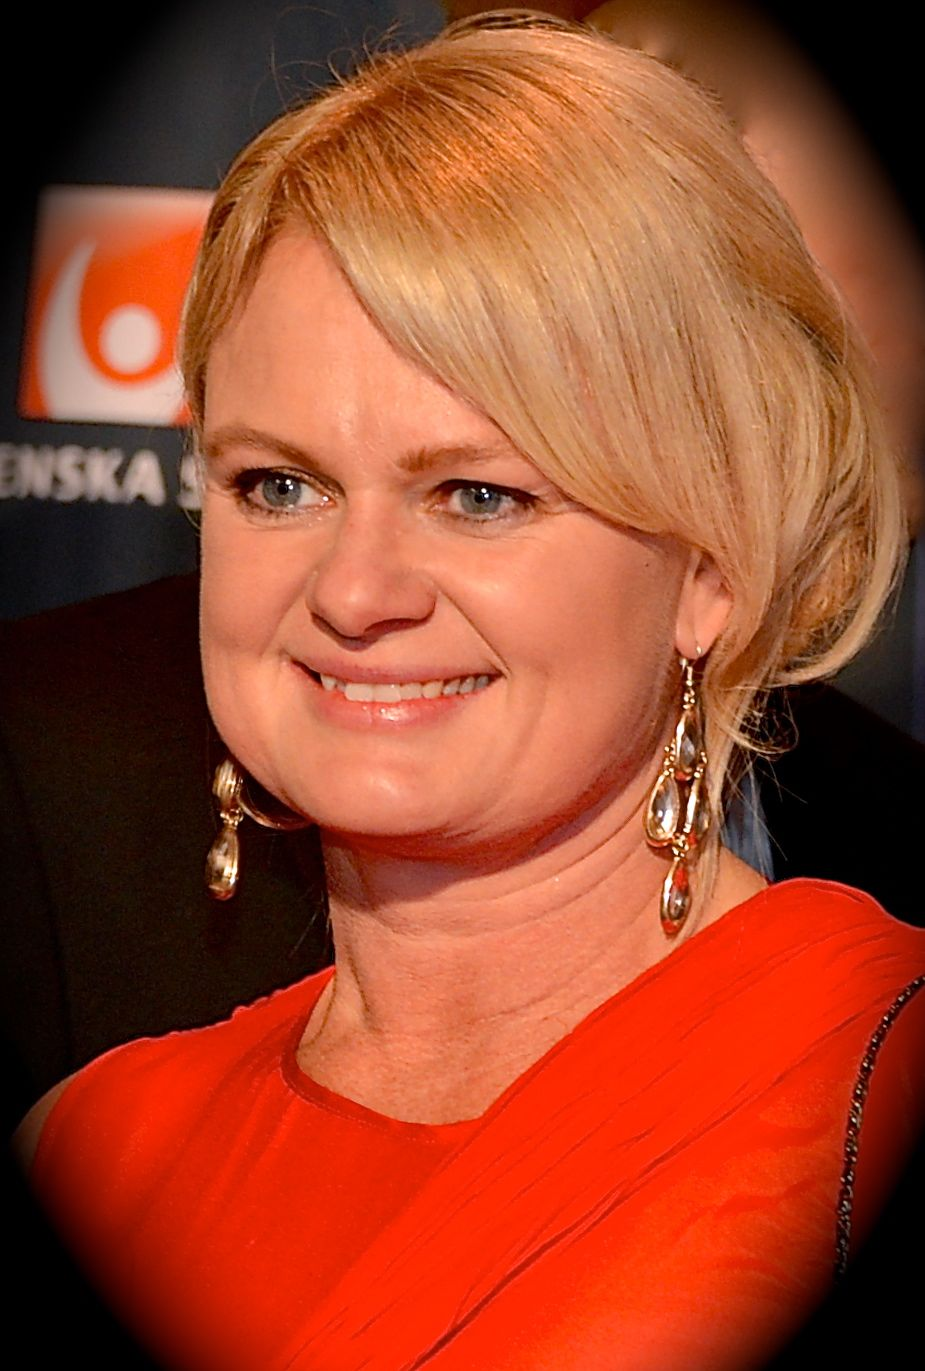 Anette Norberg file:anette norberg - wikimedia commons